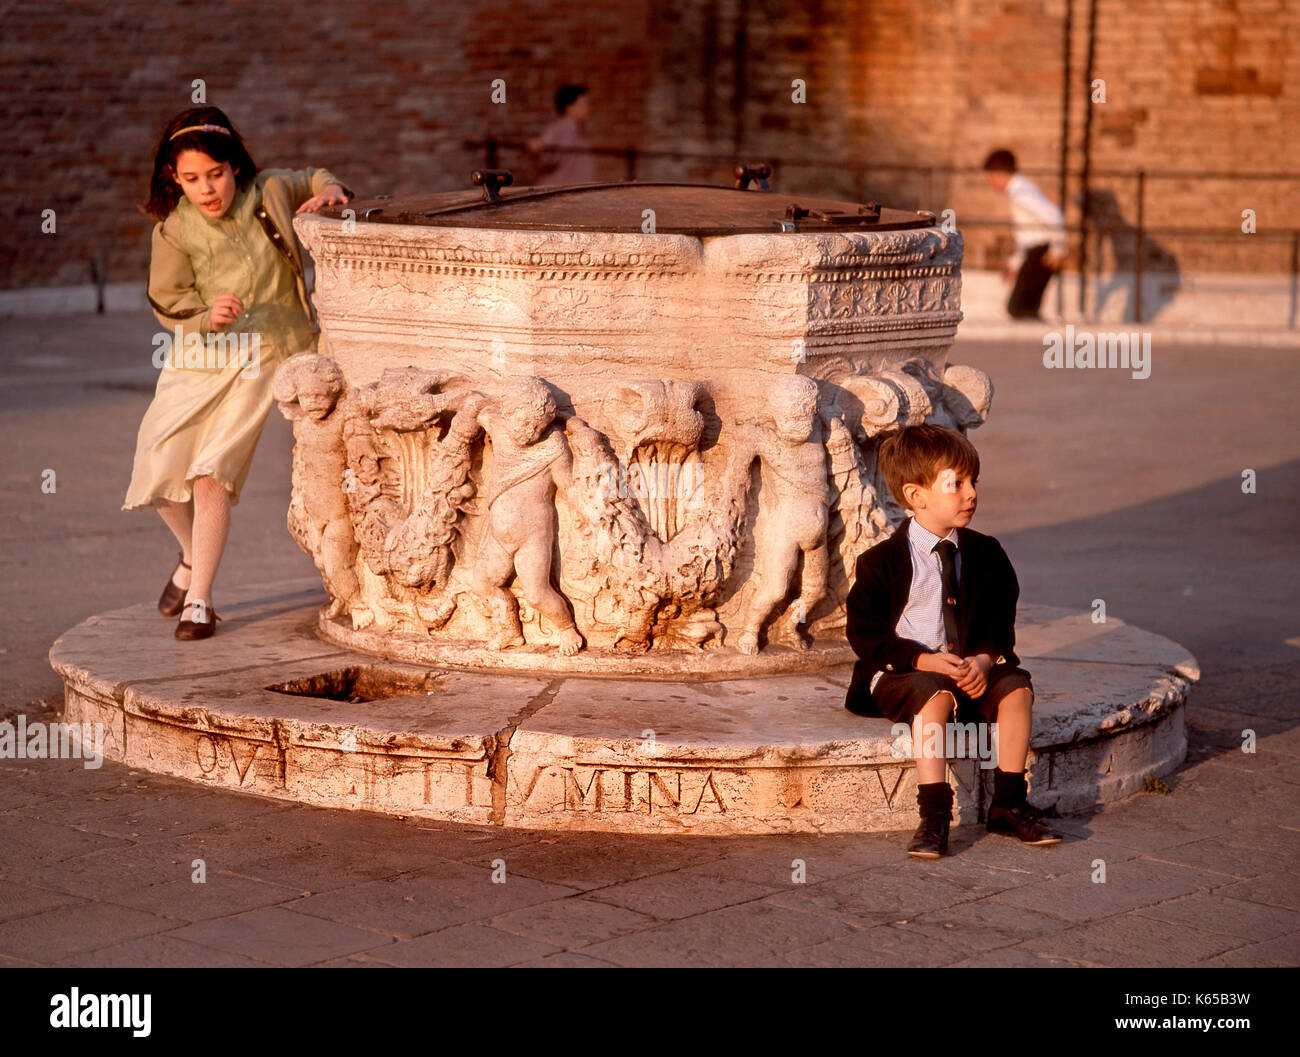 Venice, Veneto, Italy. Children playing around well head in Campo dei Frari - Stock Image